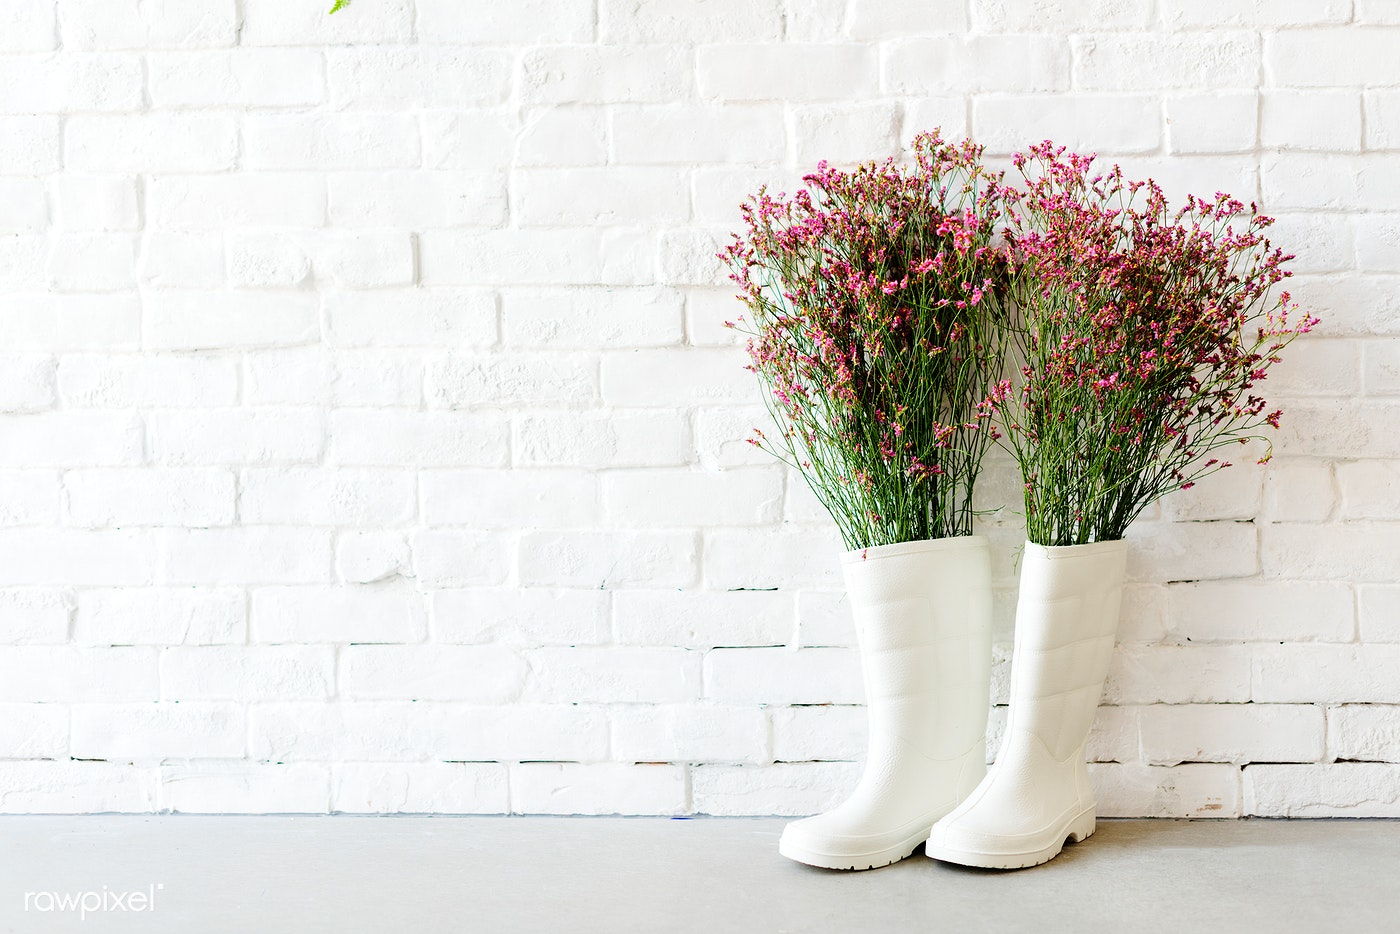 spring, flower, gardening, rain, wall, boot, garden, unique, background, be creative, beautiful, beauty, black, bloom,...